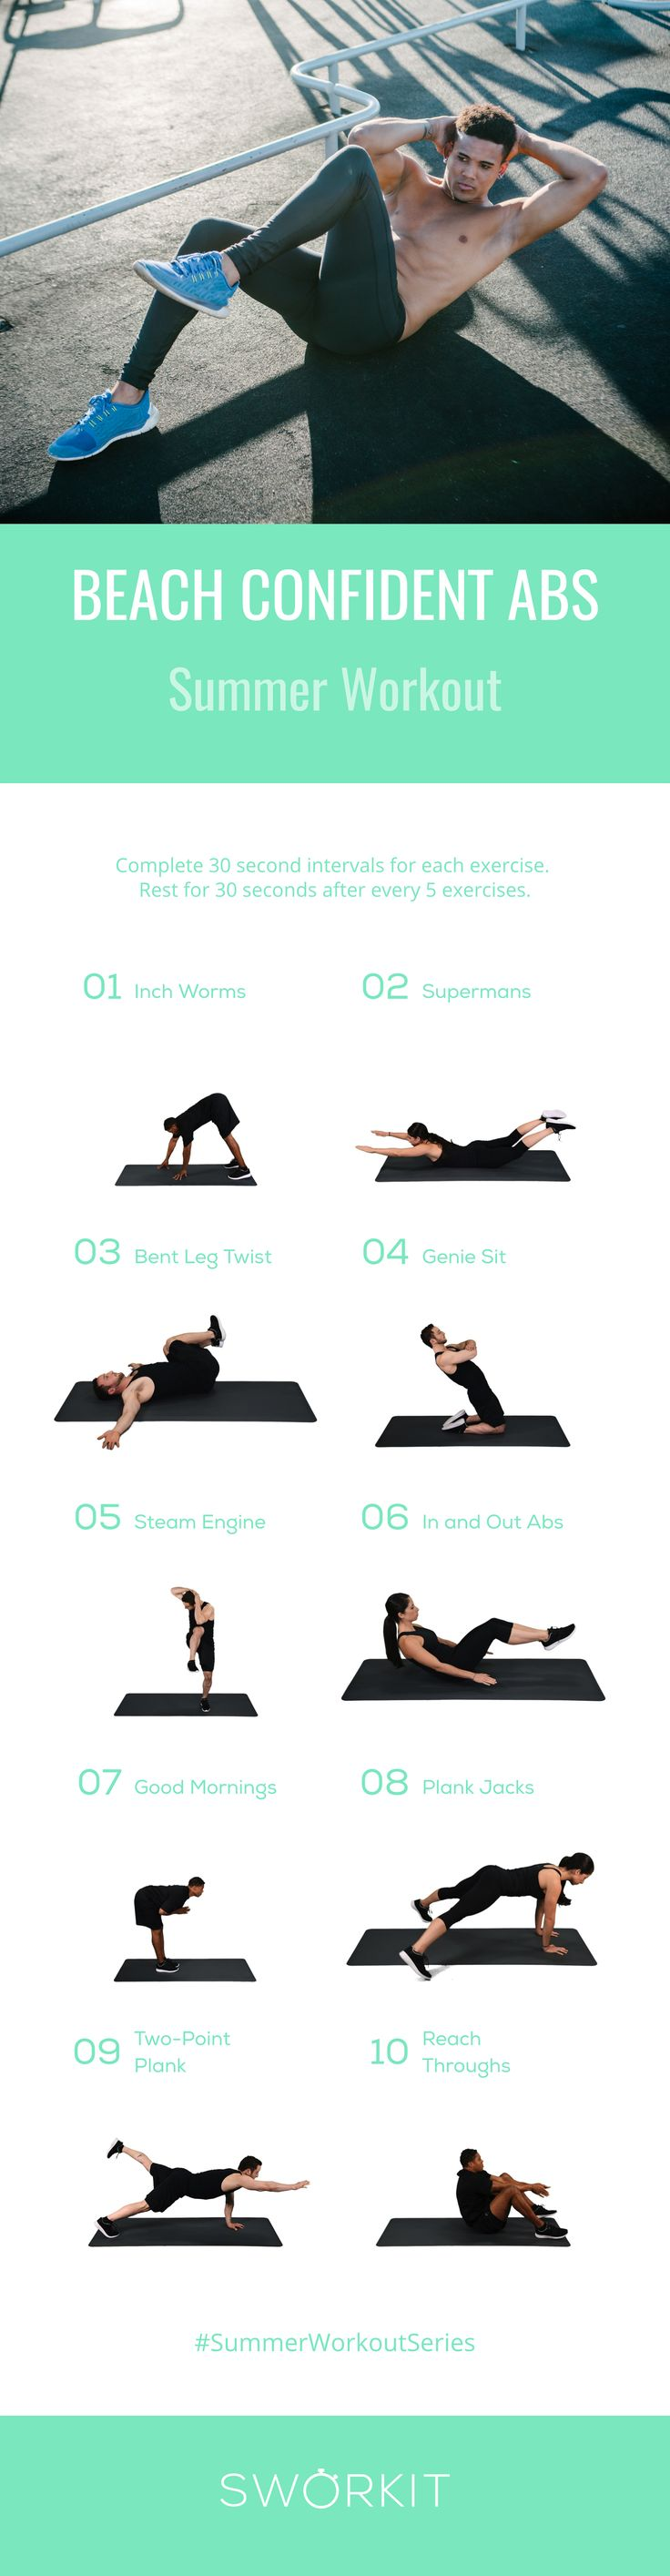 Get Working on Your Beach Confident Body! We have the #SummerWorkoutSeries with custom exercises for your #BeachBod. We're not promising 6-pack abs, but you will feel a stronger and tighter core on the beach. #SummerWorkoutSeries